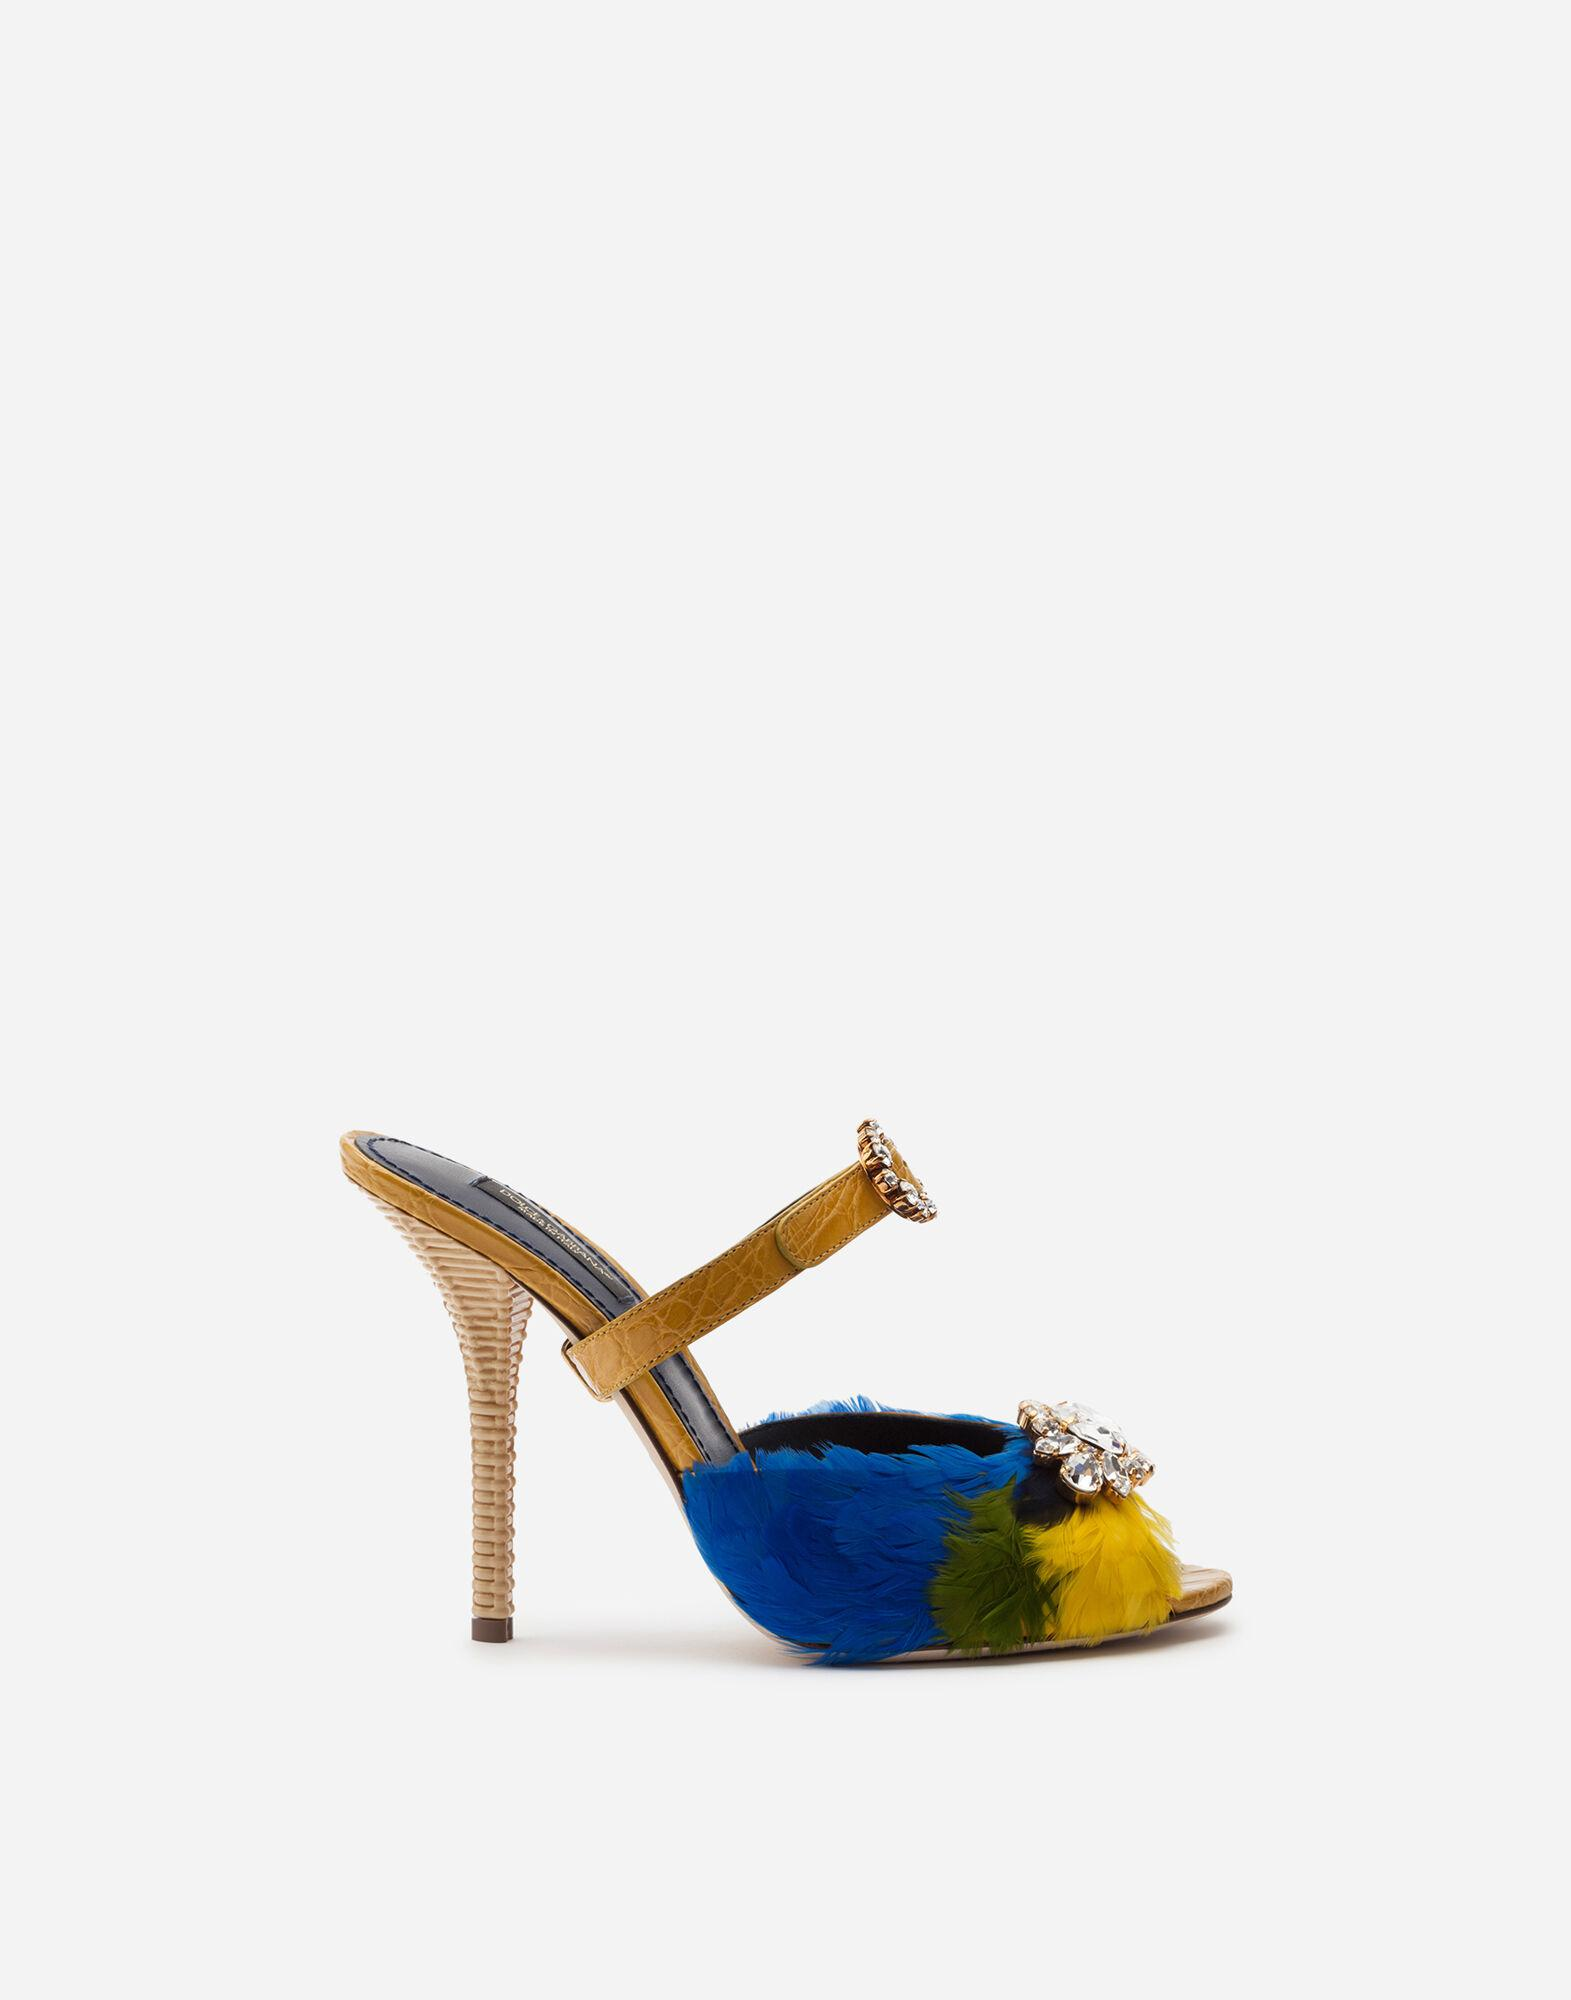 Crocodile flank leather and feather mules with jewel embroidery 0